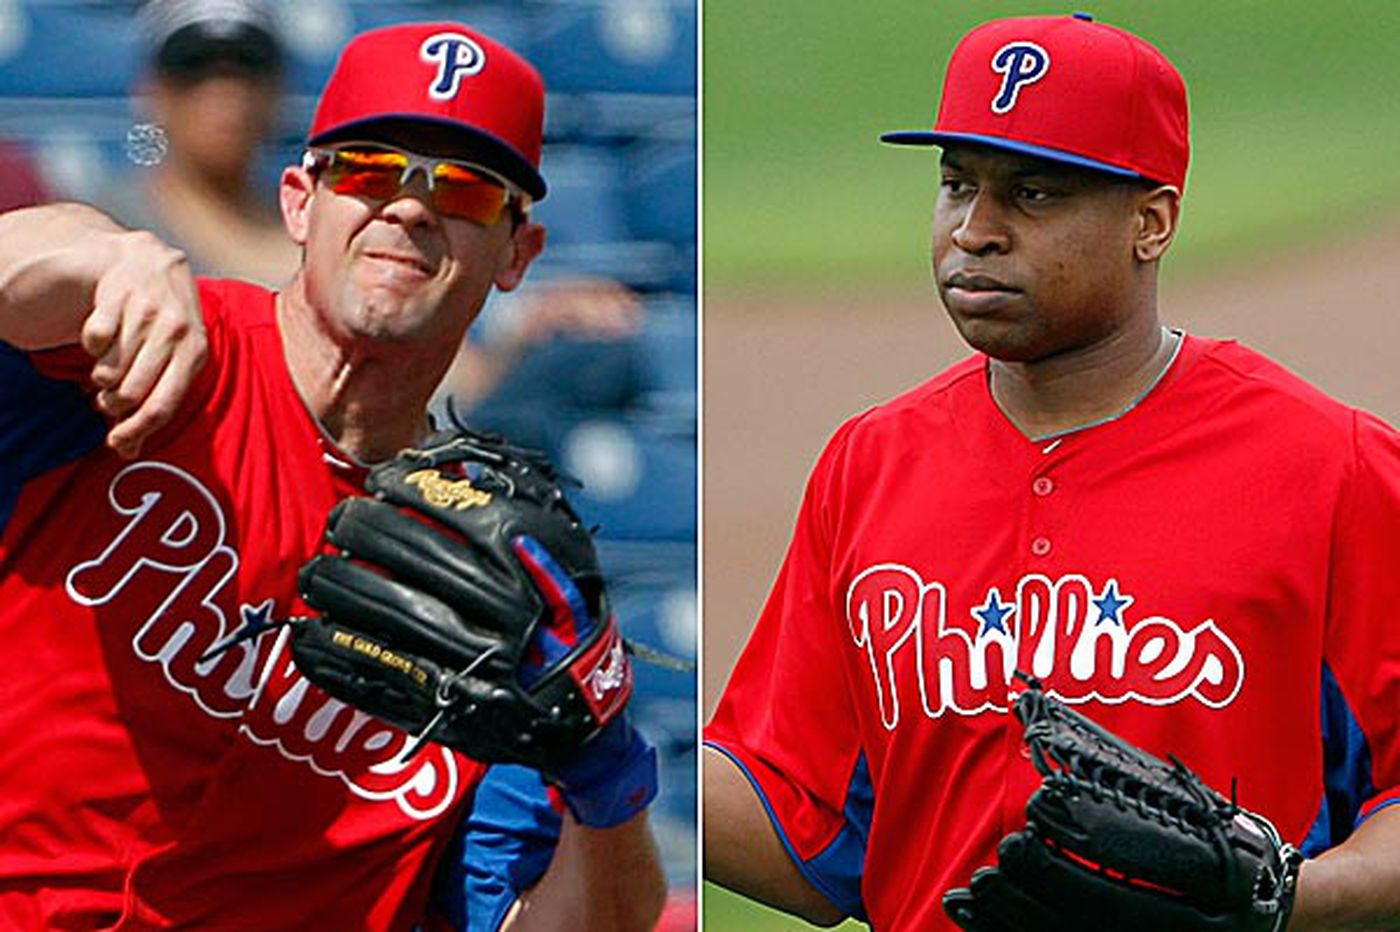 Phillies hope Michael Young is positive influence on Delmon Young